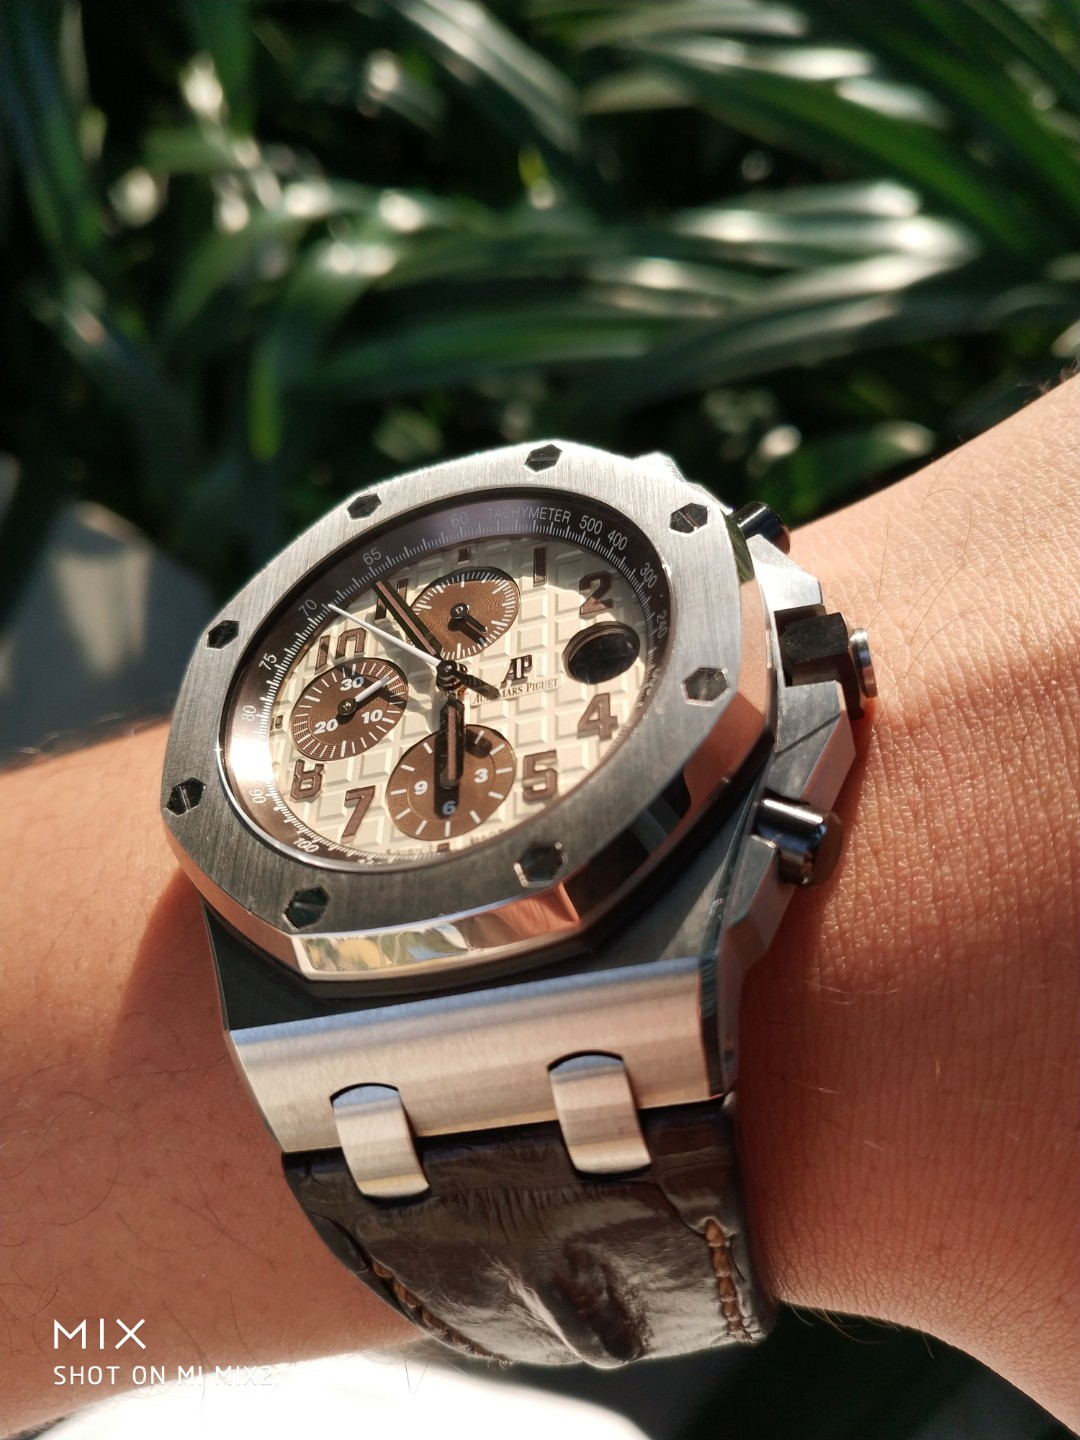 Audemars Piguet Royal Oak Offshore 26470st Safari